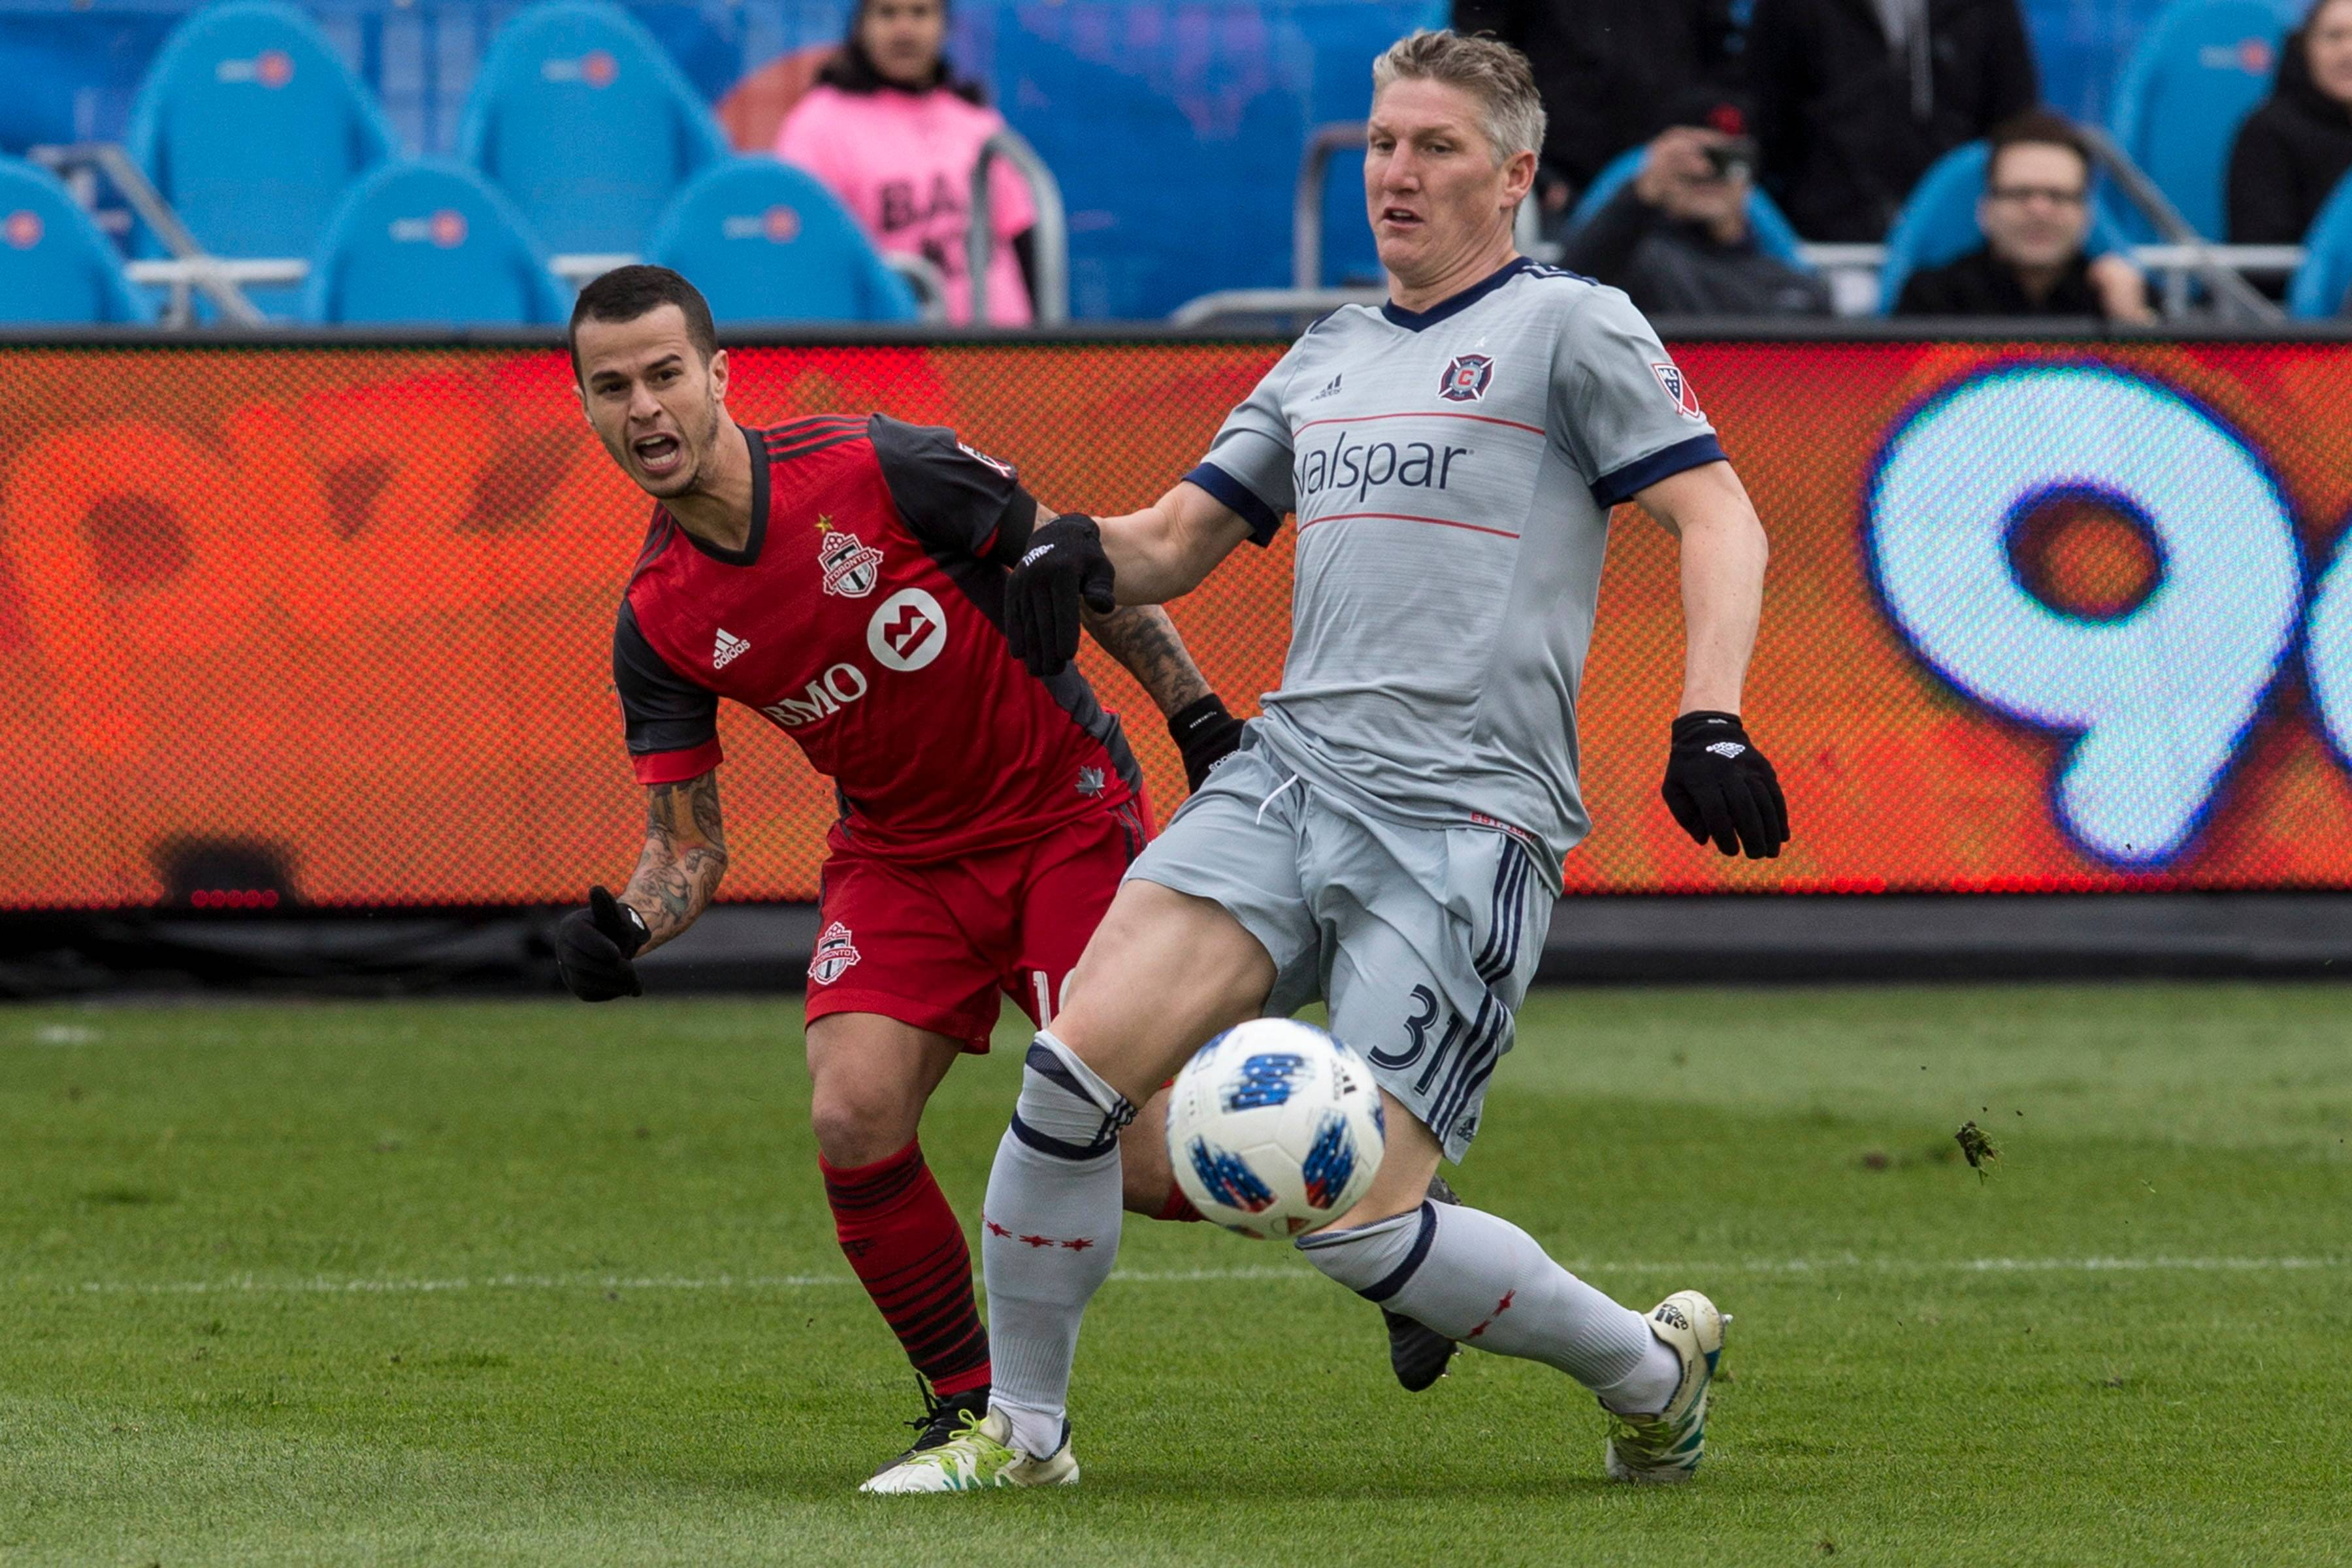 Toronto FC's Sebastian Giovinco (left) moves the ball past Chicago Fire's Bastian Schweinsteiger during an April match in Toronto.